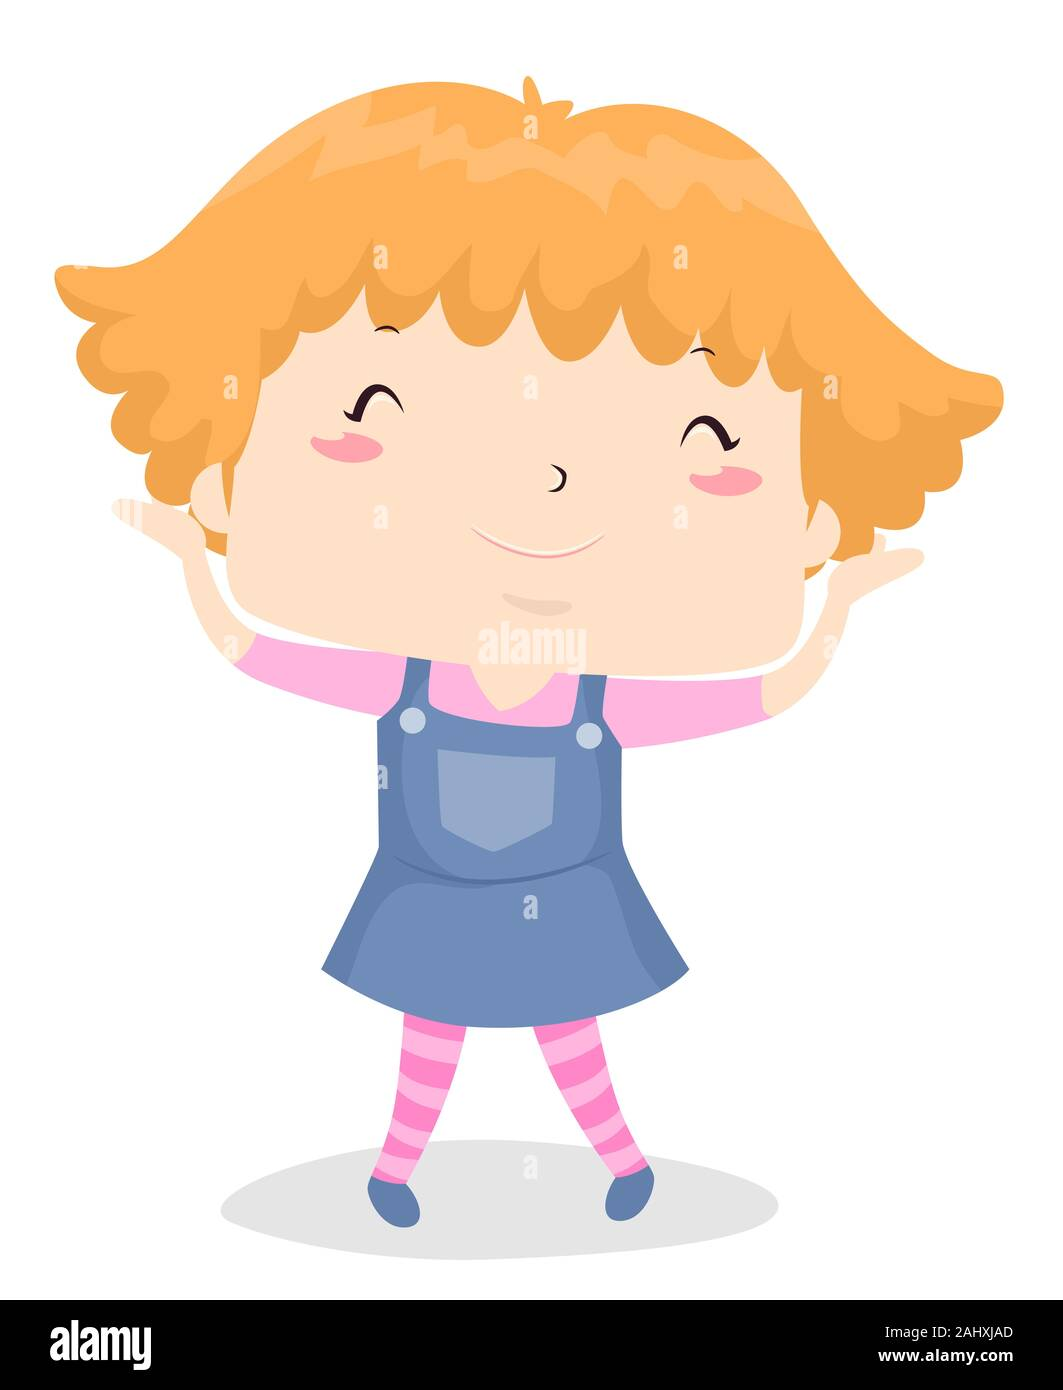 Illustration Of A Kid Girl Showing Her Short Hair Short Adjective Sample Stock Photo Alamy